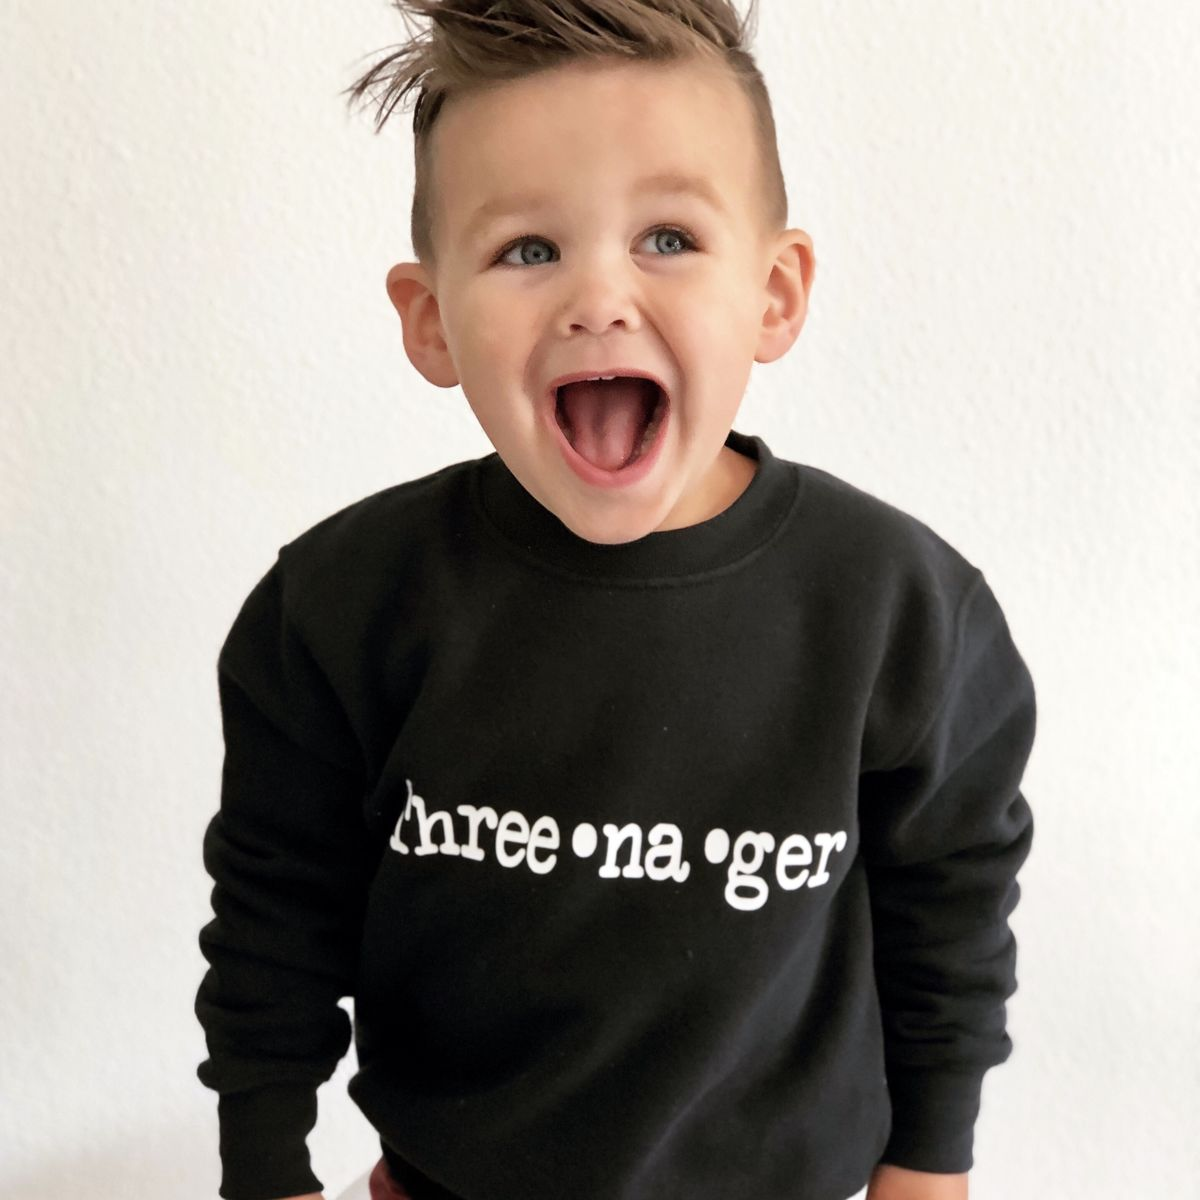 Three-na-ger Sweatshirt - product images  of